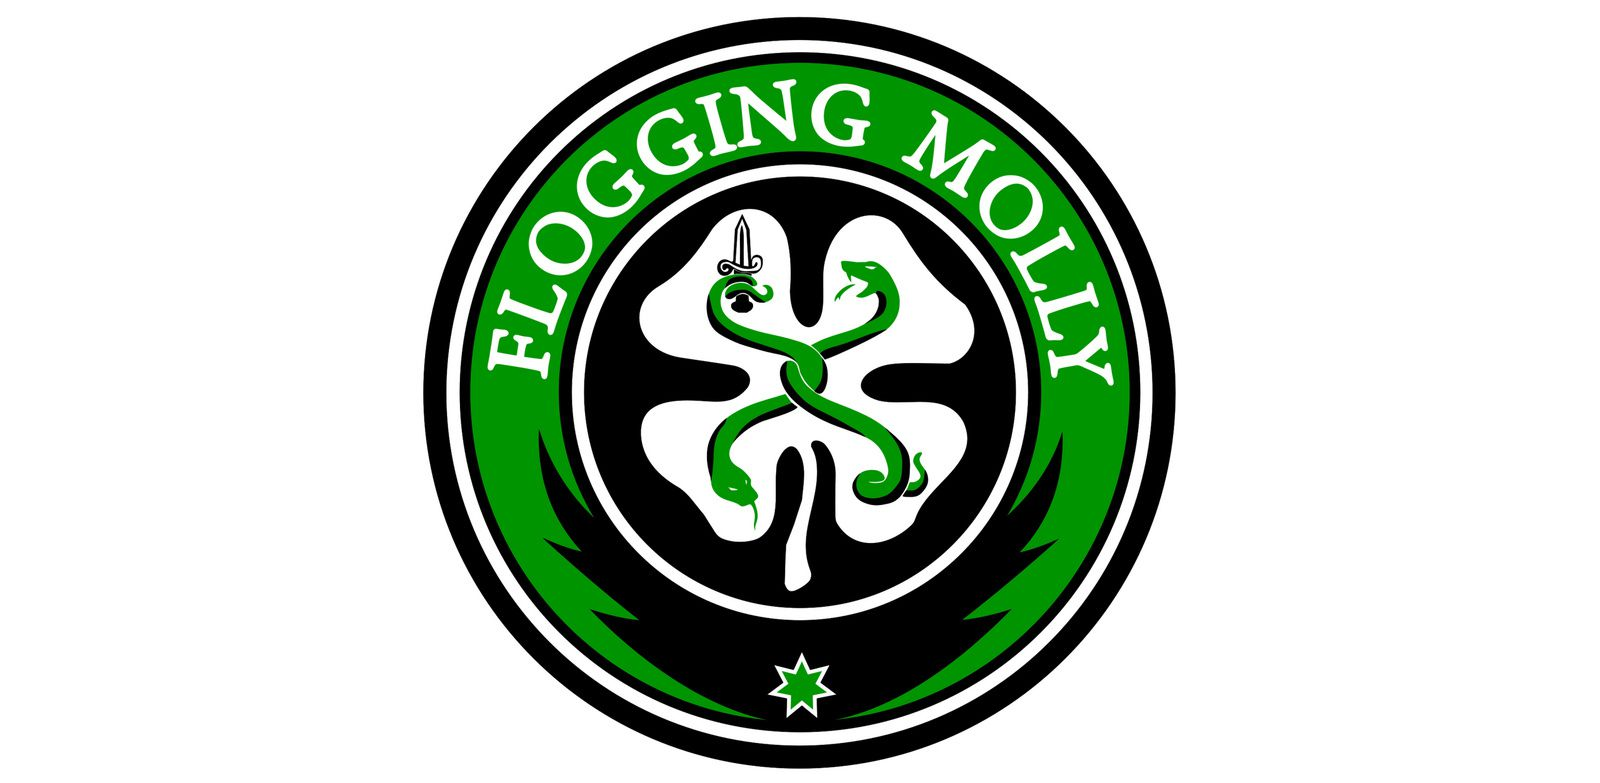 Hellband #163 Flogging Molly